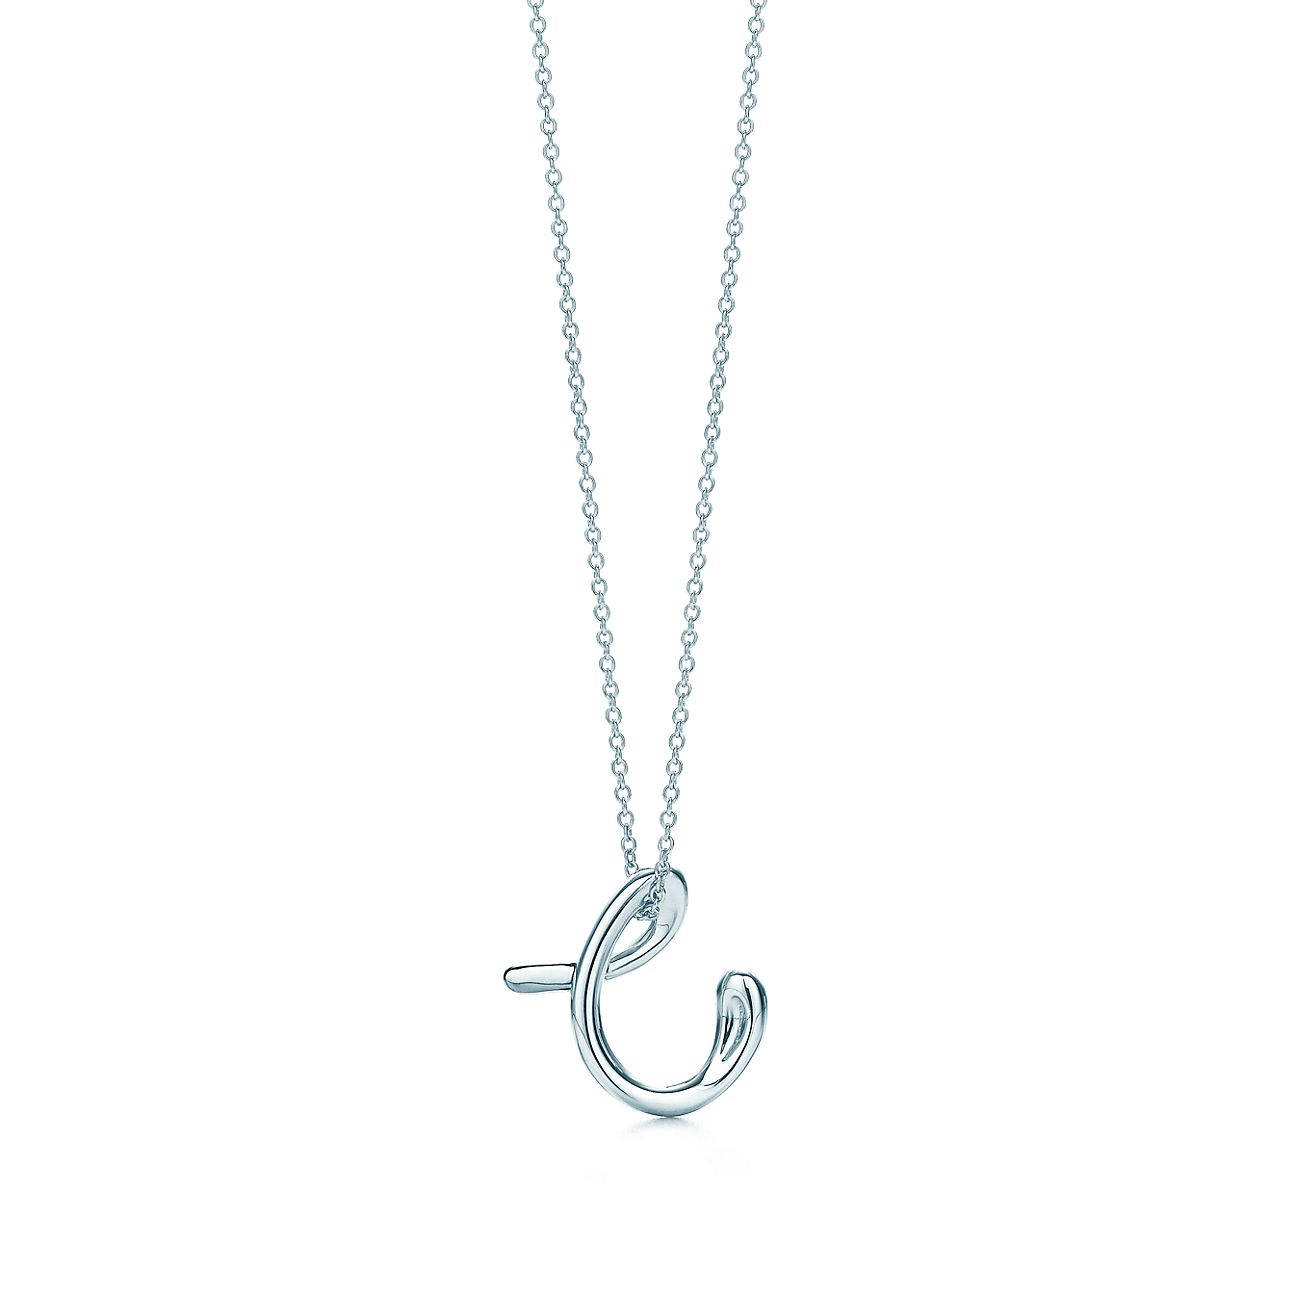 Elsa Peretti letter C pendant in sterling silver, small - Size C Tiffany & Co.